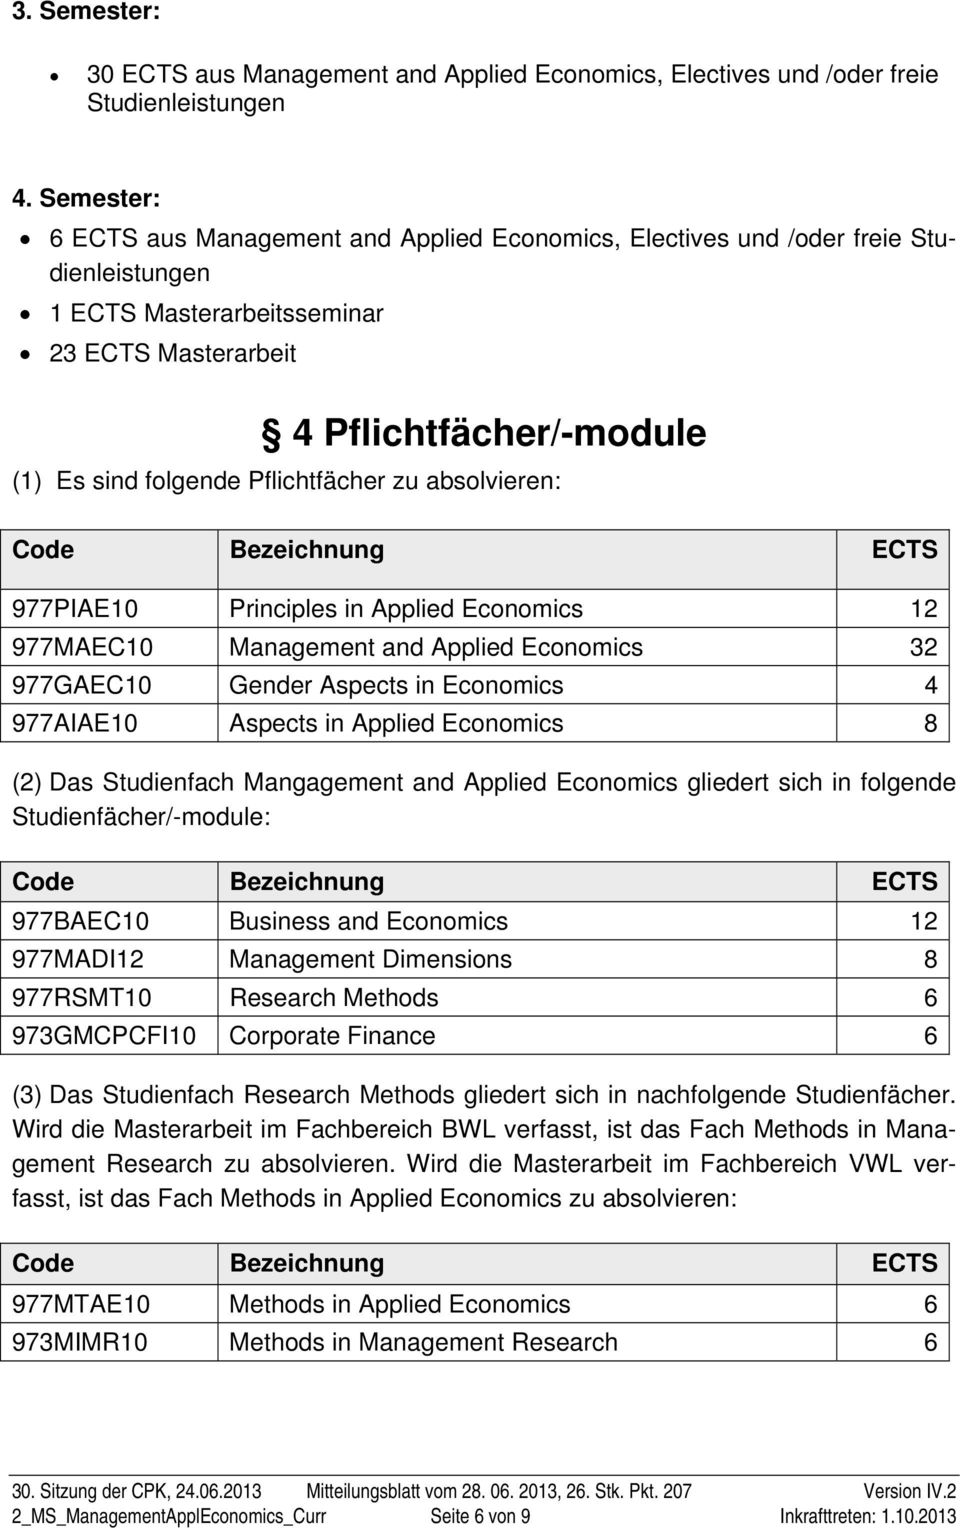 Pflichtfächer zu absolvieren: 977PIAE10 Principles in Applied Economics 12 977MAEC10 Management and Applied Economics 32 977GAEC10 Gender Aspects in Economics 4 977AIAE10 Aspects in Applied Economics